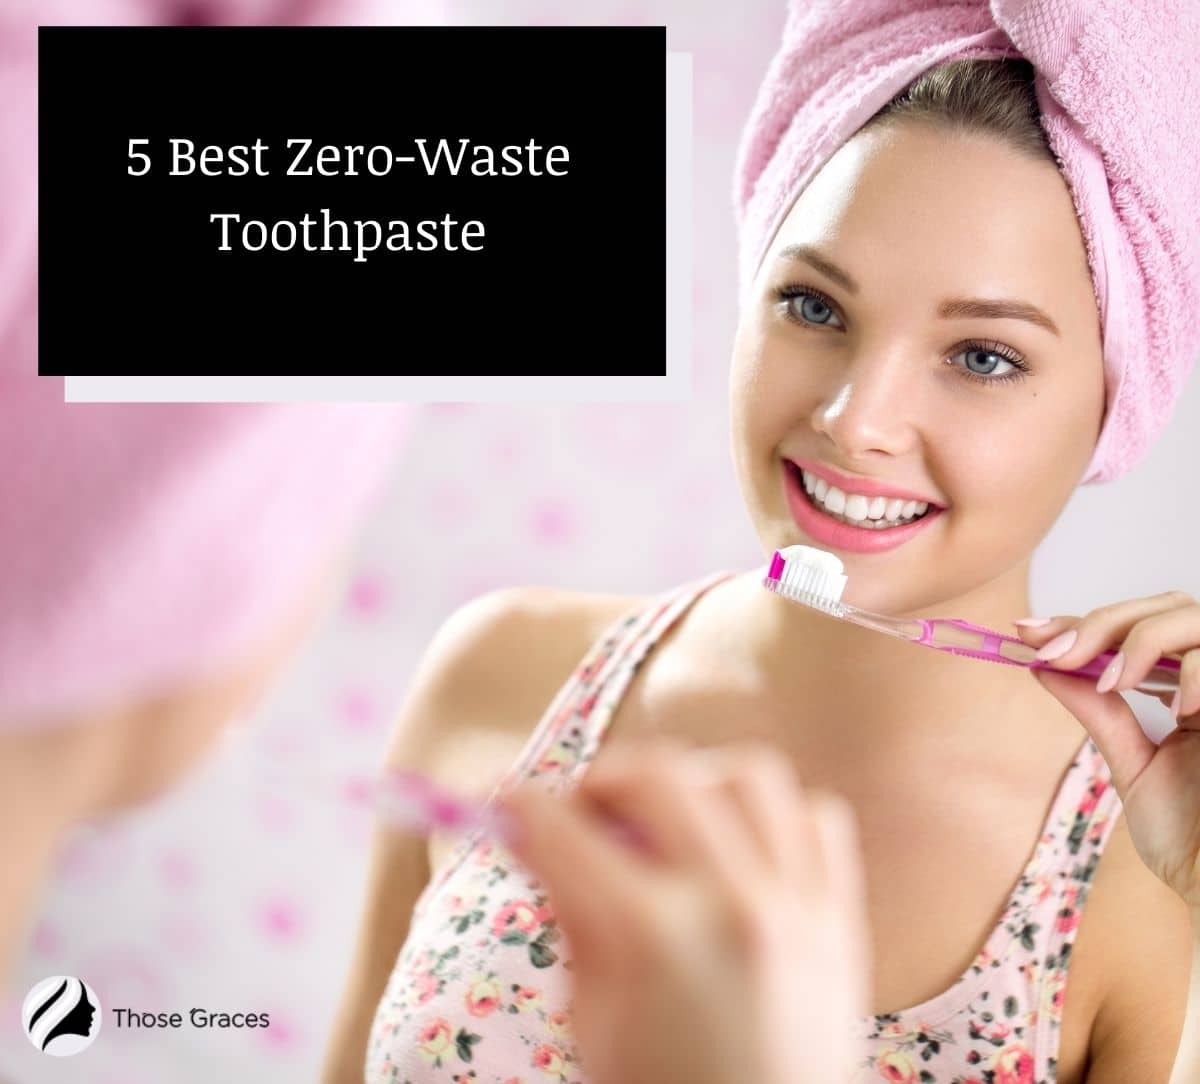 a beautiful lady in a floral sando is facing the mirror while using a zero waste toothpaste